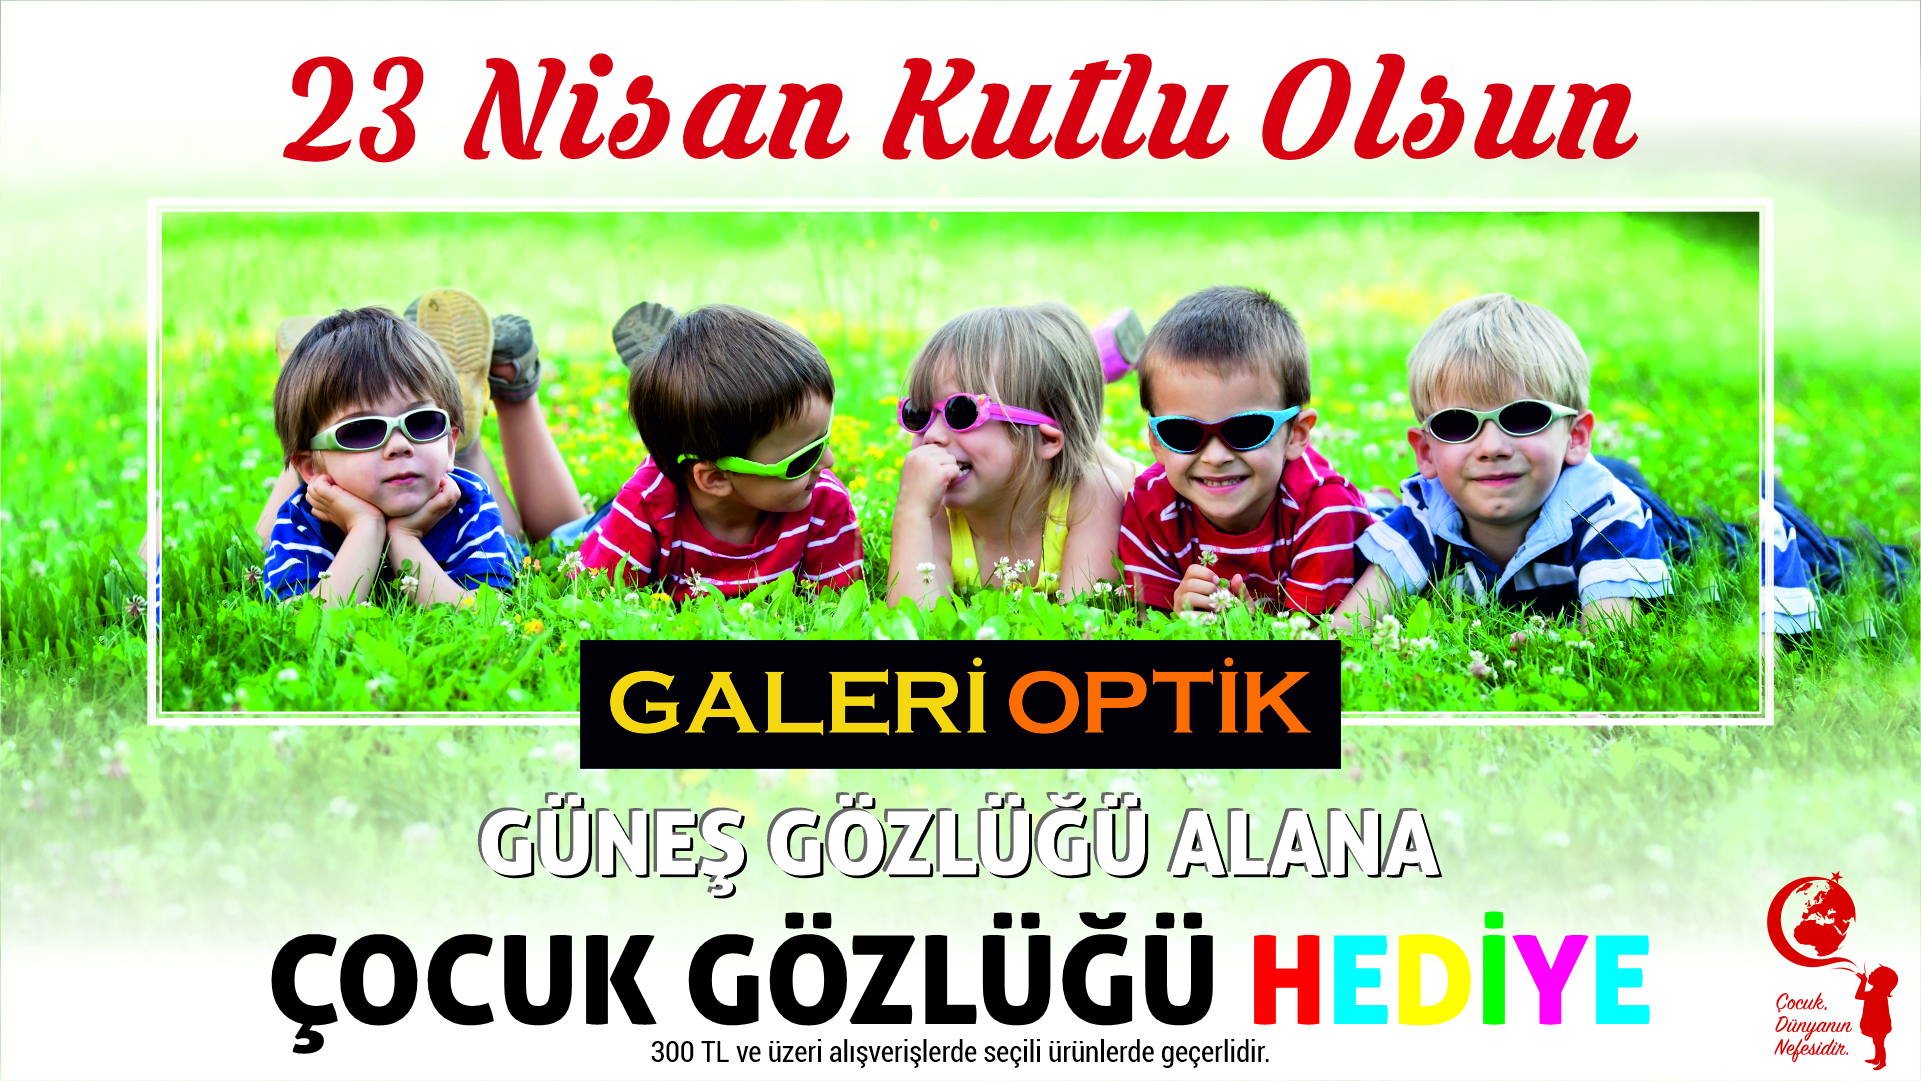 GALERİ OPTİK